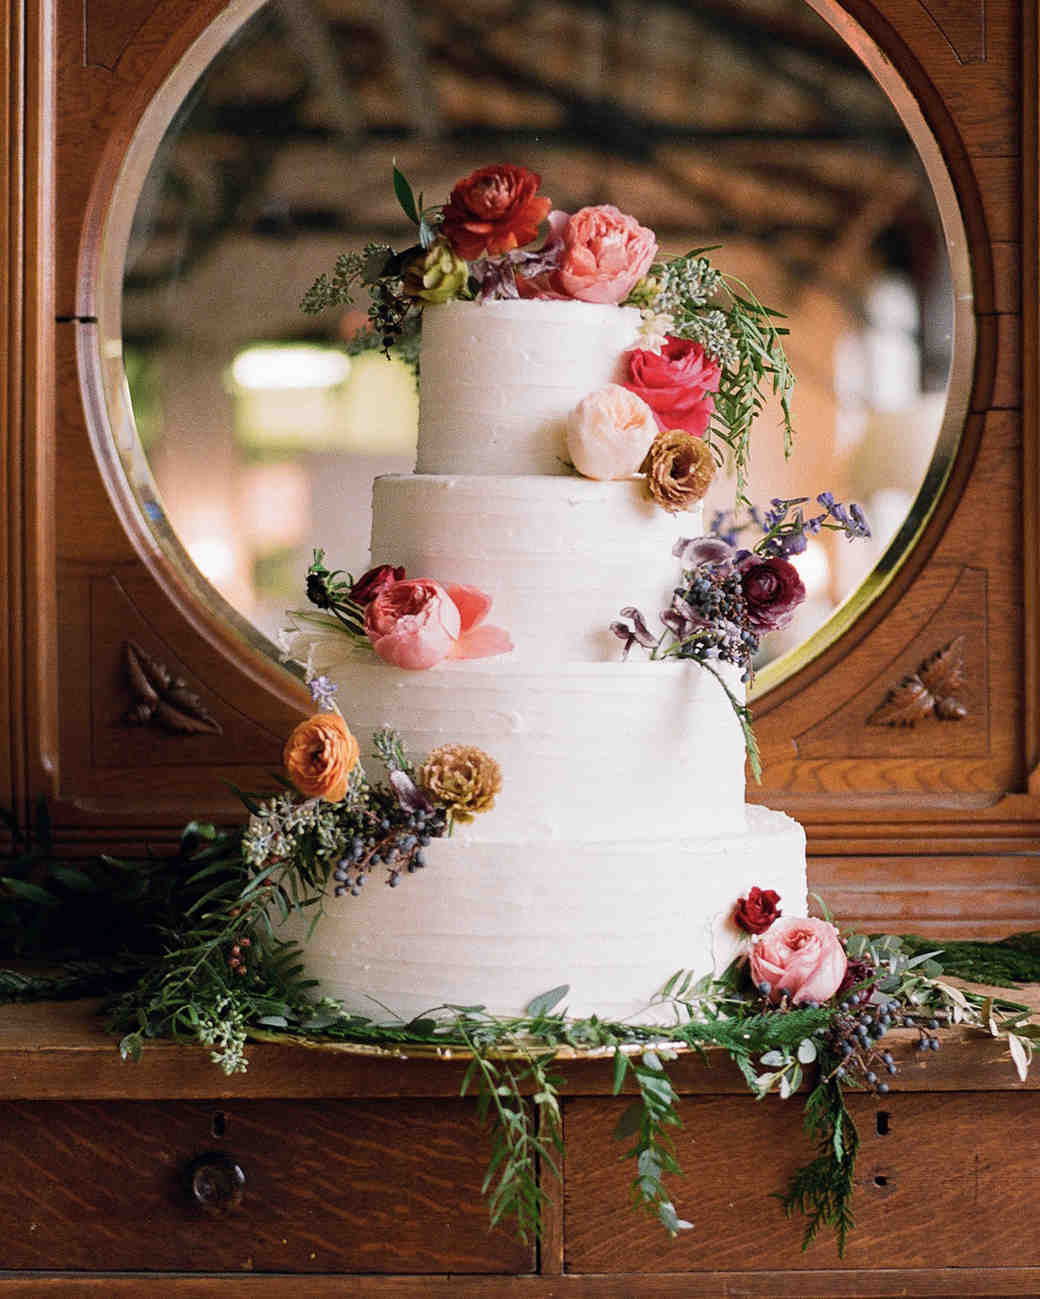 4 Of The Best White Winter Wedding Themes Wedding Ideas: 23 Festive Winter Wedding Cakes